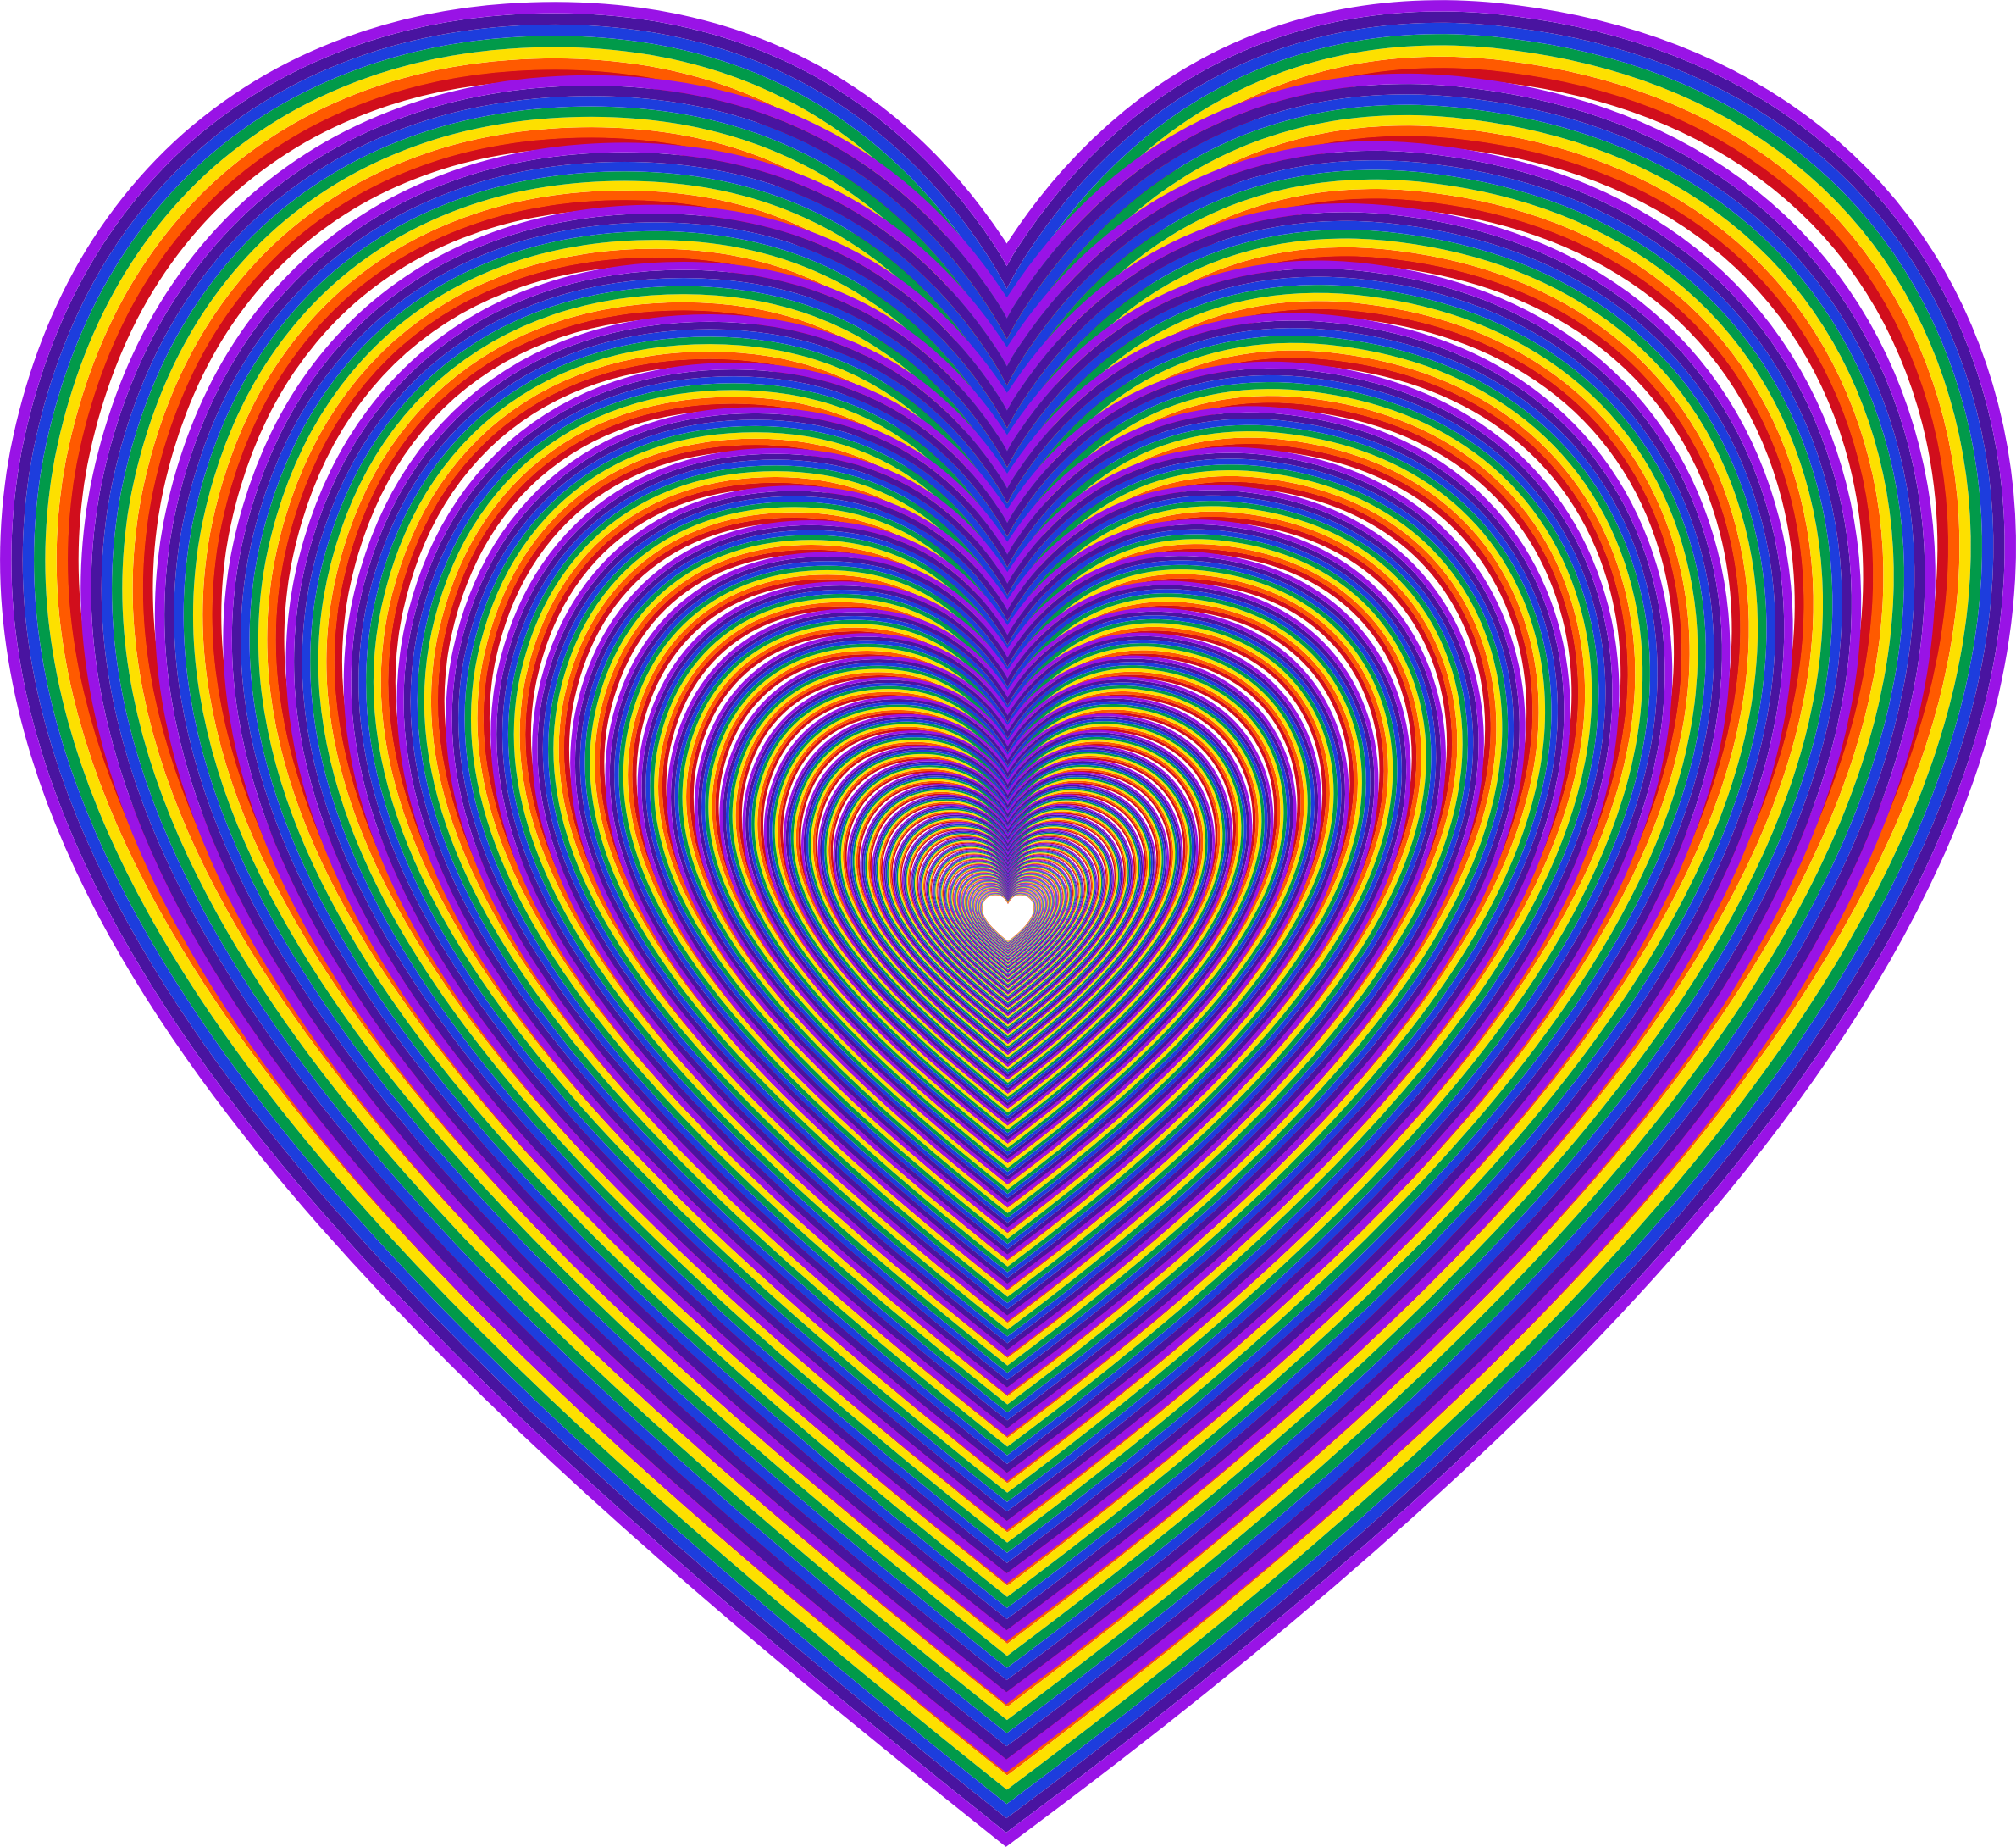 Heart big image png. 3 clipart rainbow